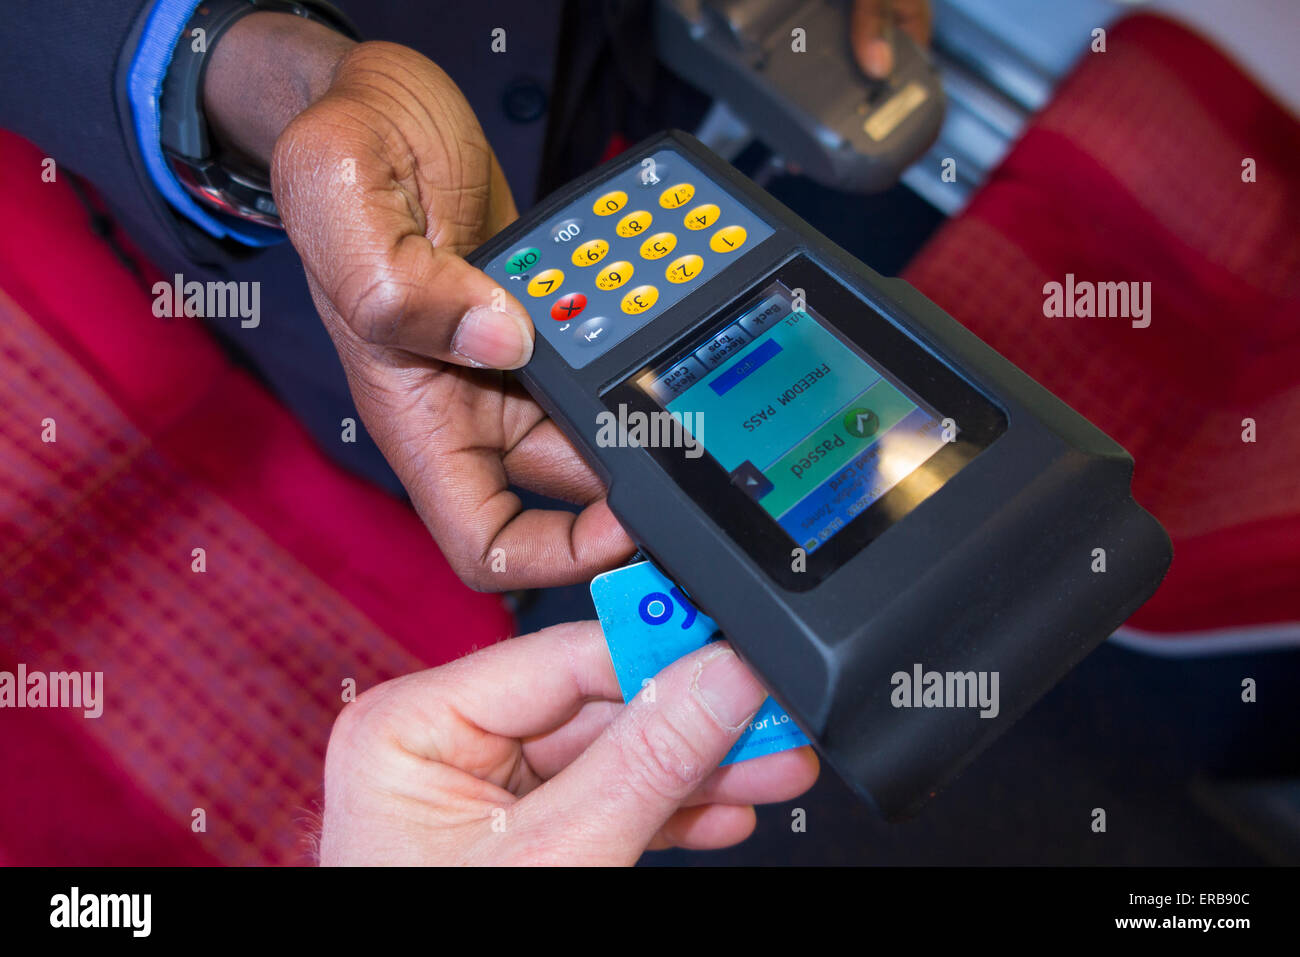 Inspector checks / reads Oyster Card ticket with reader on SW Trains overground train also valid LT bus /underground - Stock Image